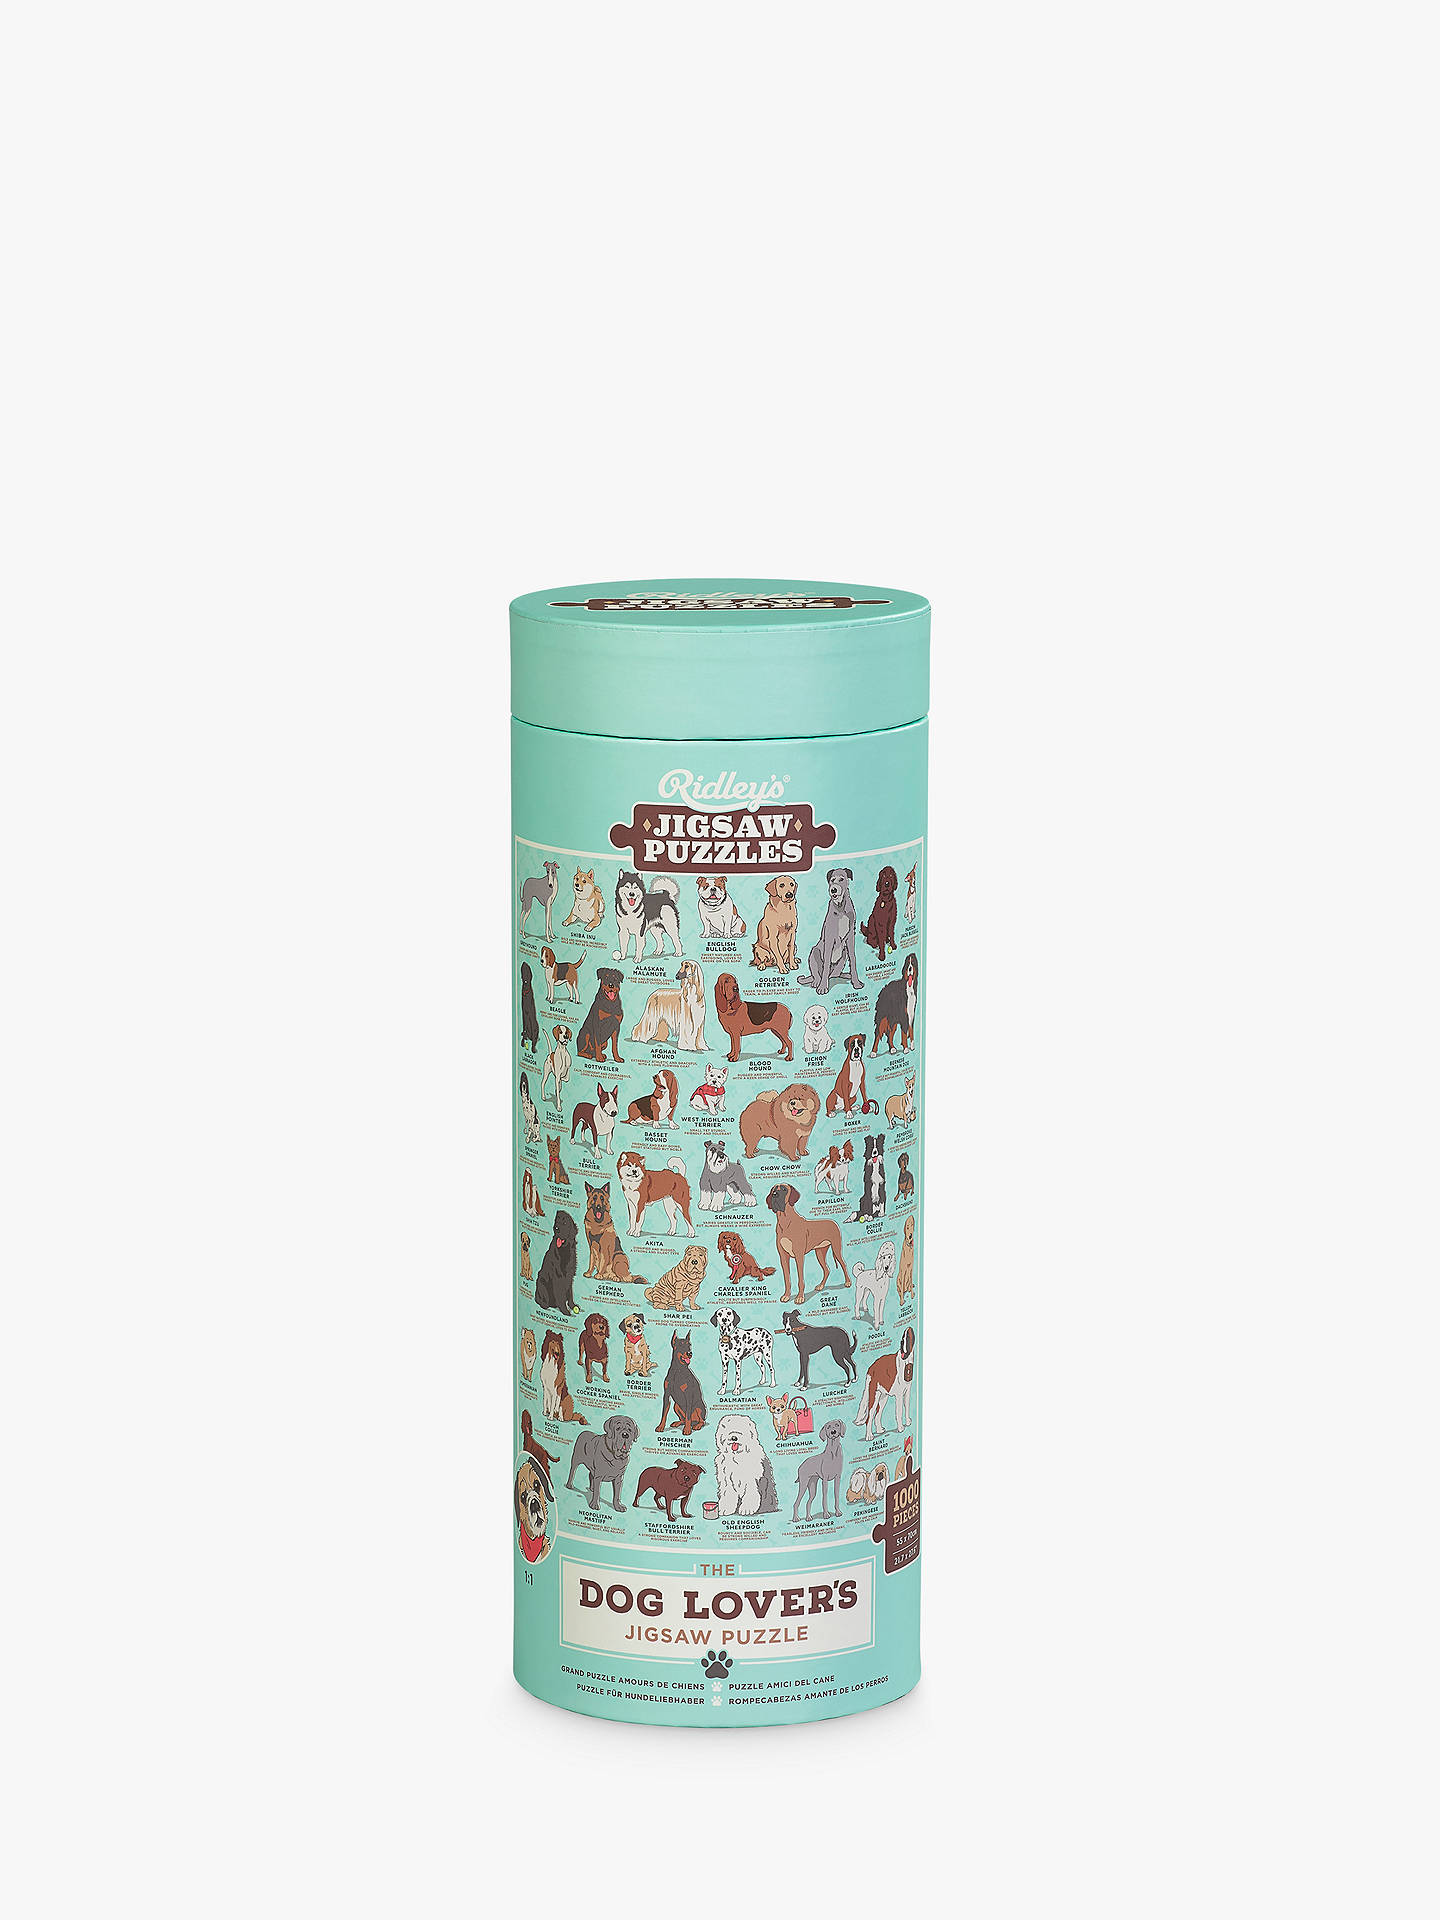 Ridley\'s Dog Lovers Jigsaw Puzzle, 1000 Pieces at John Lewis & Partners